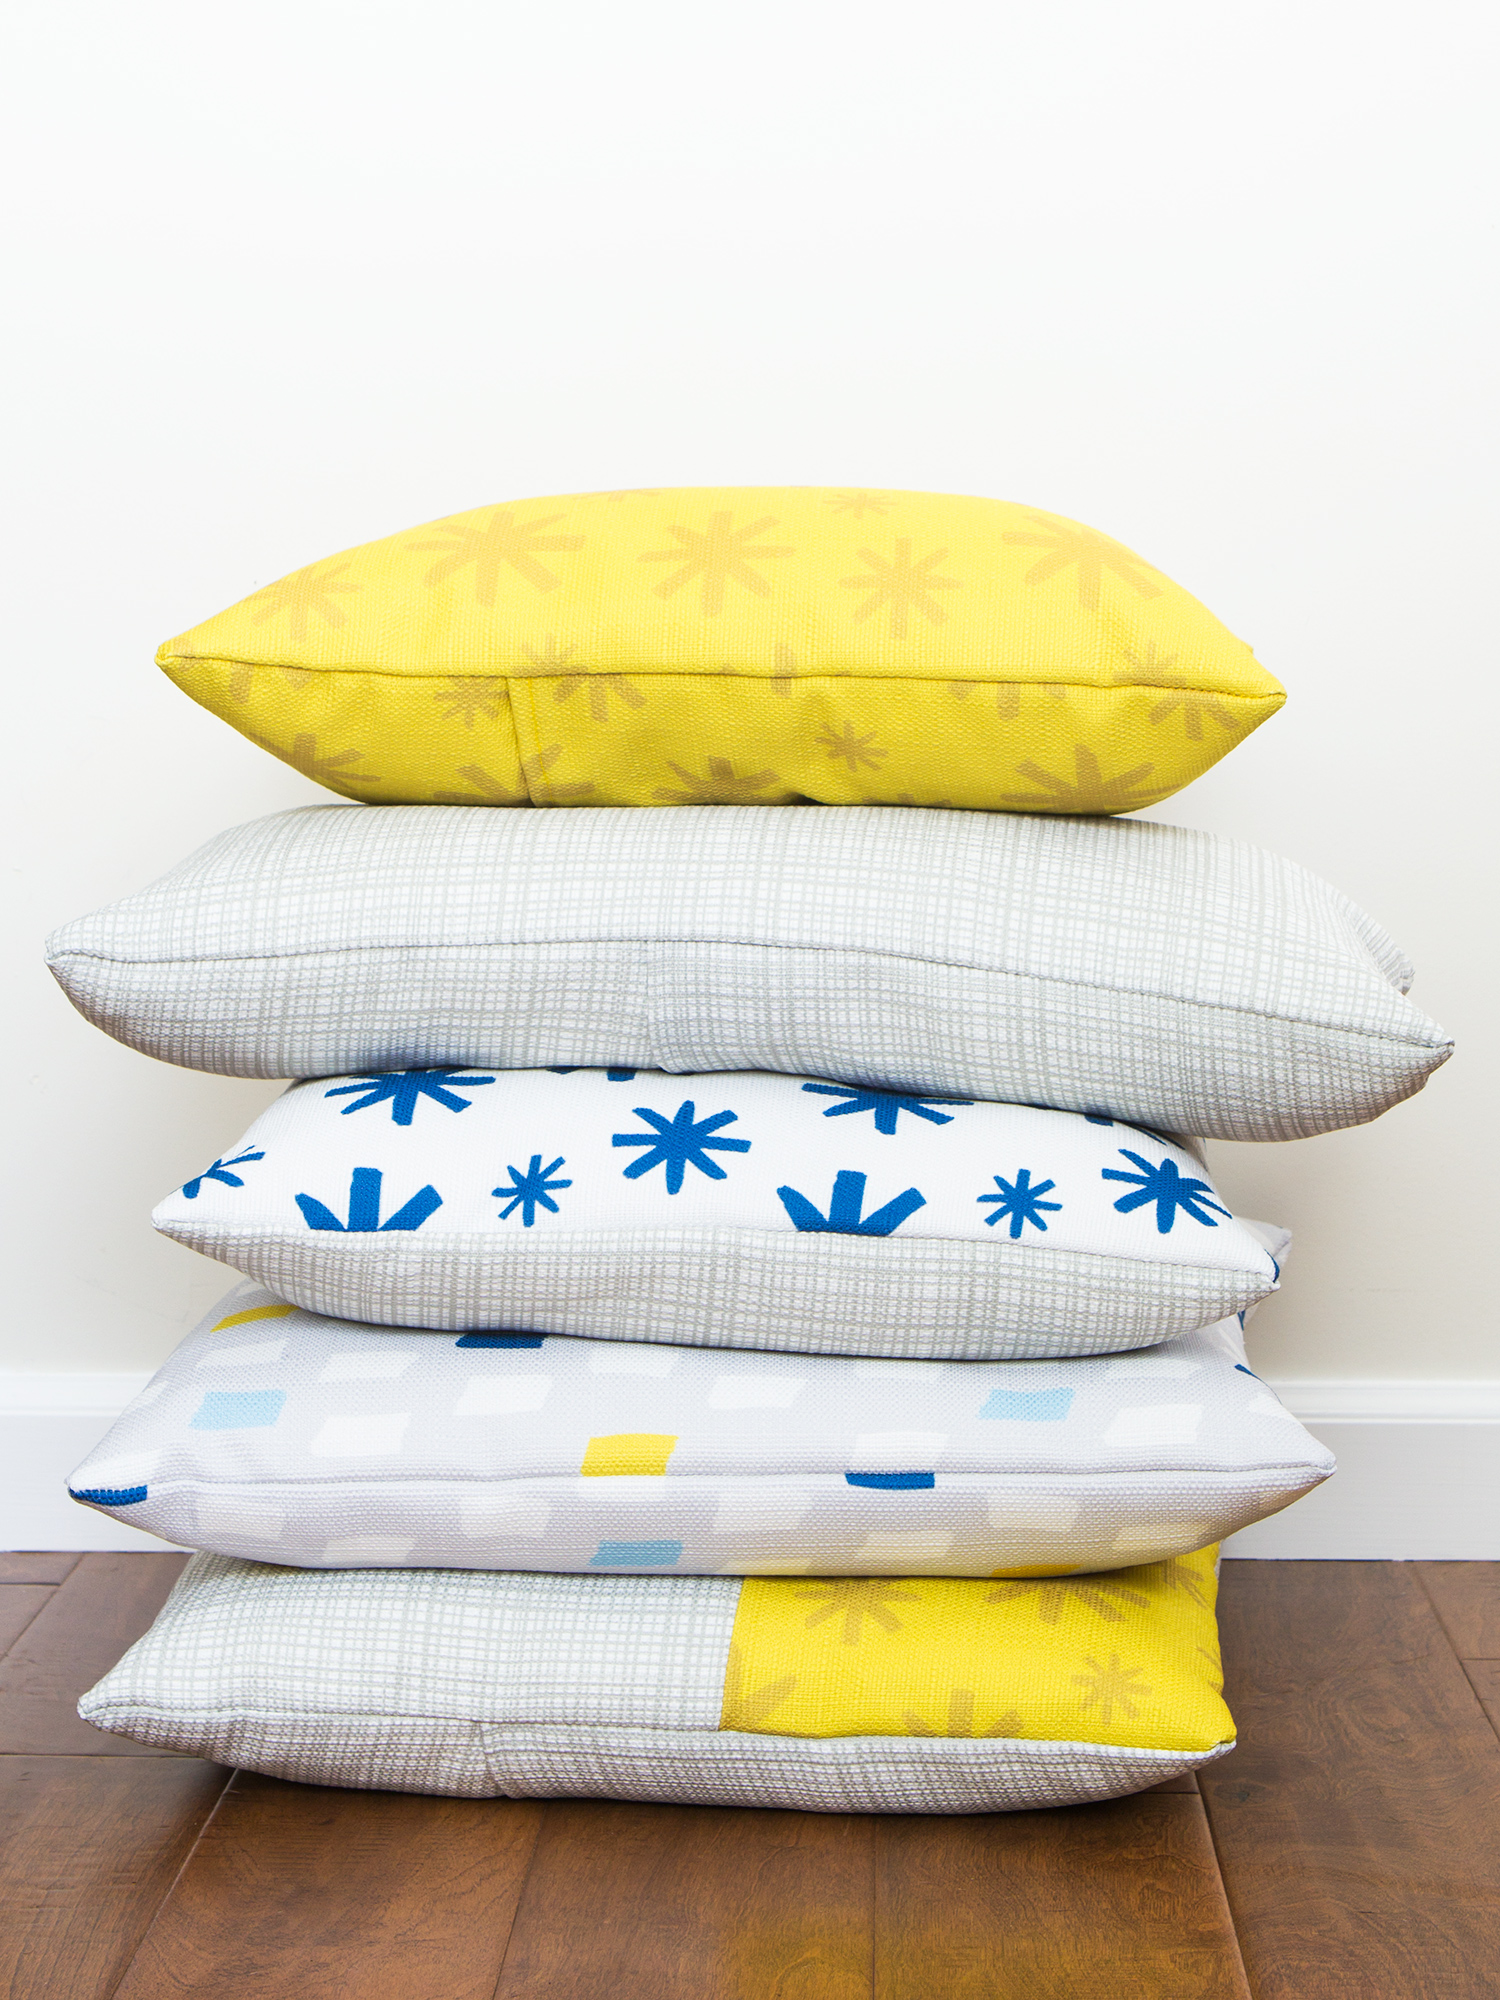 Learn how to create throw pillow covers without messing with zippers! Made with @zazzle